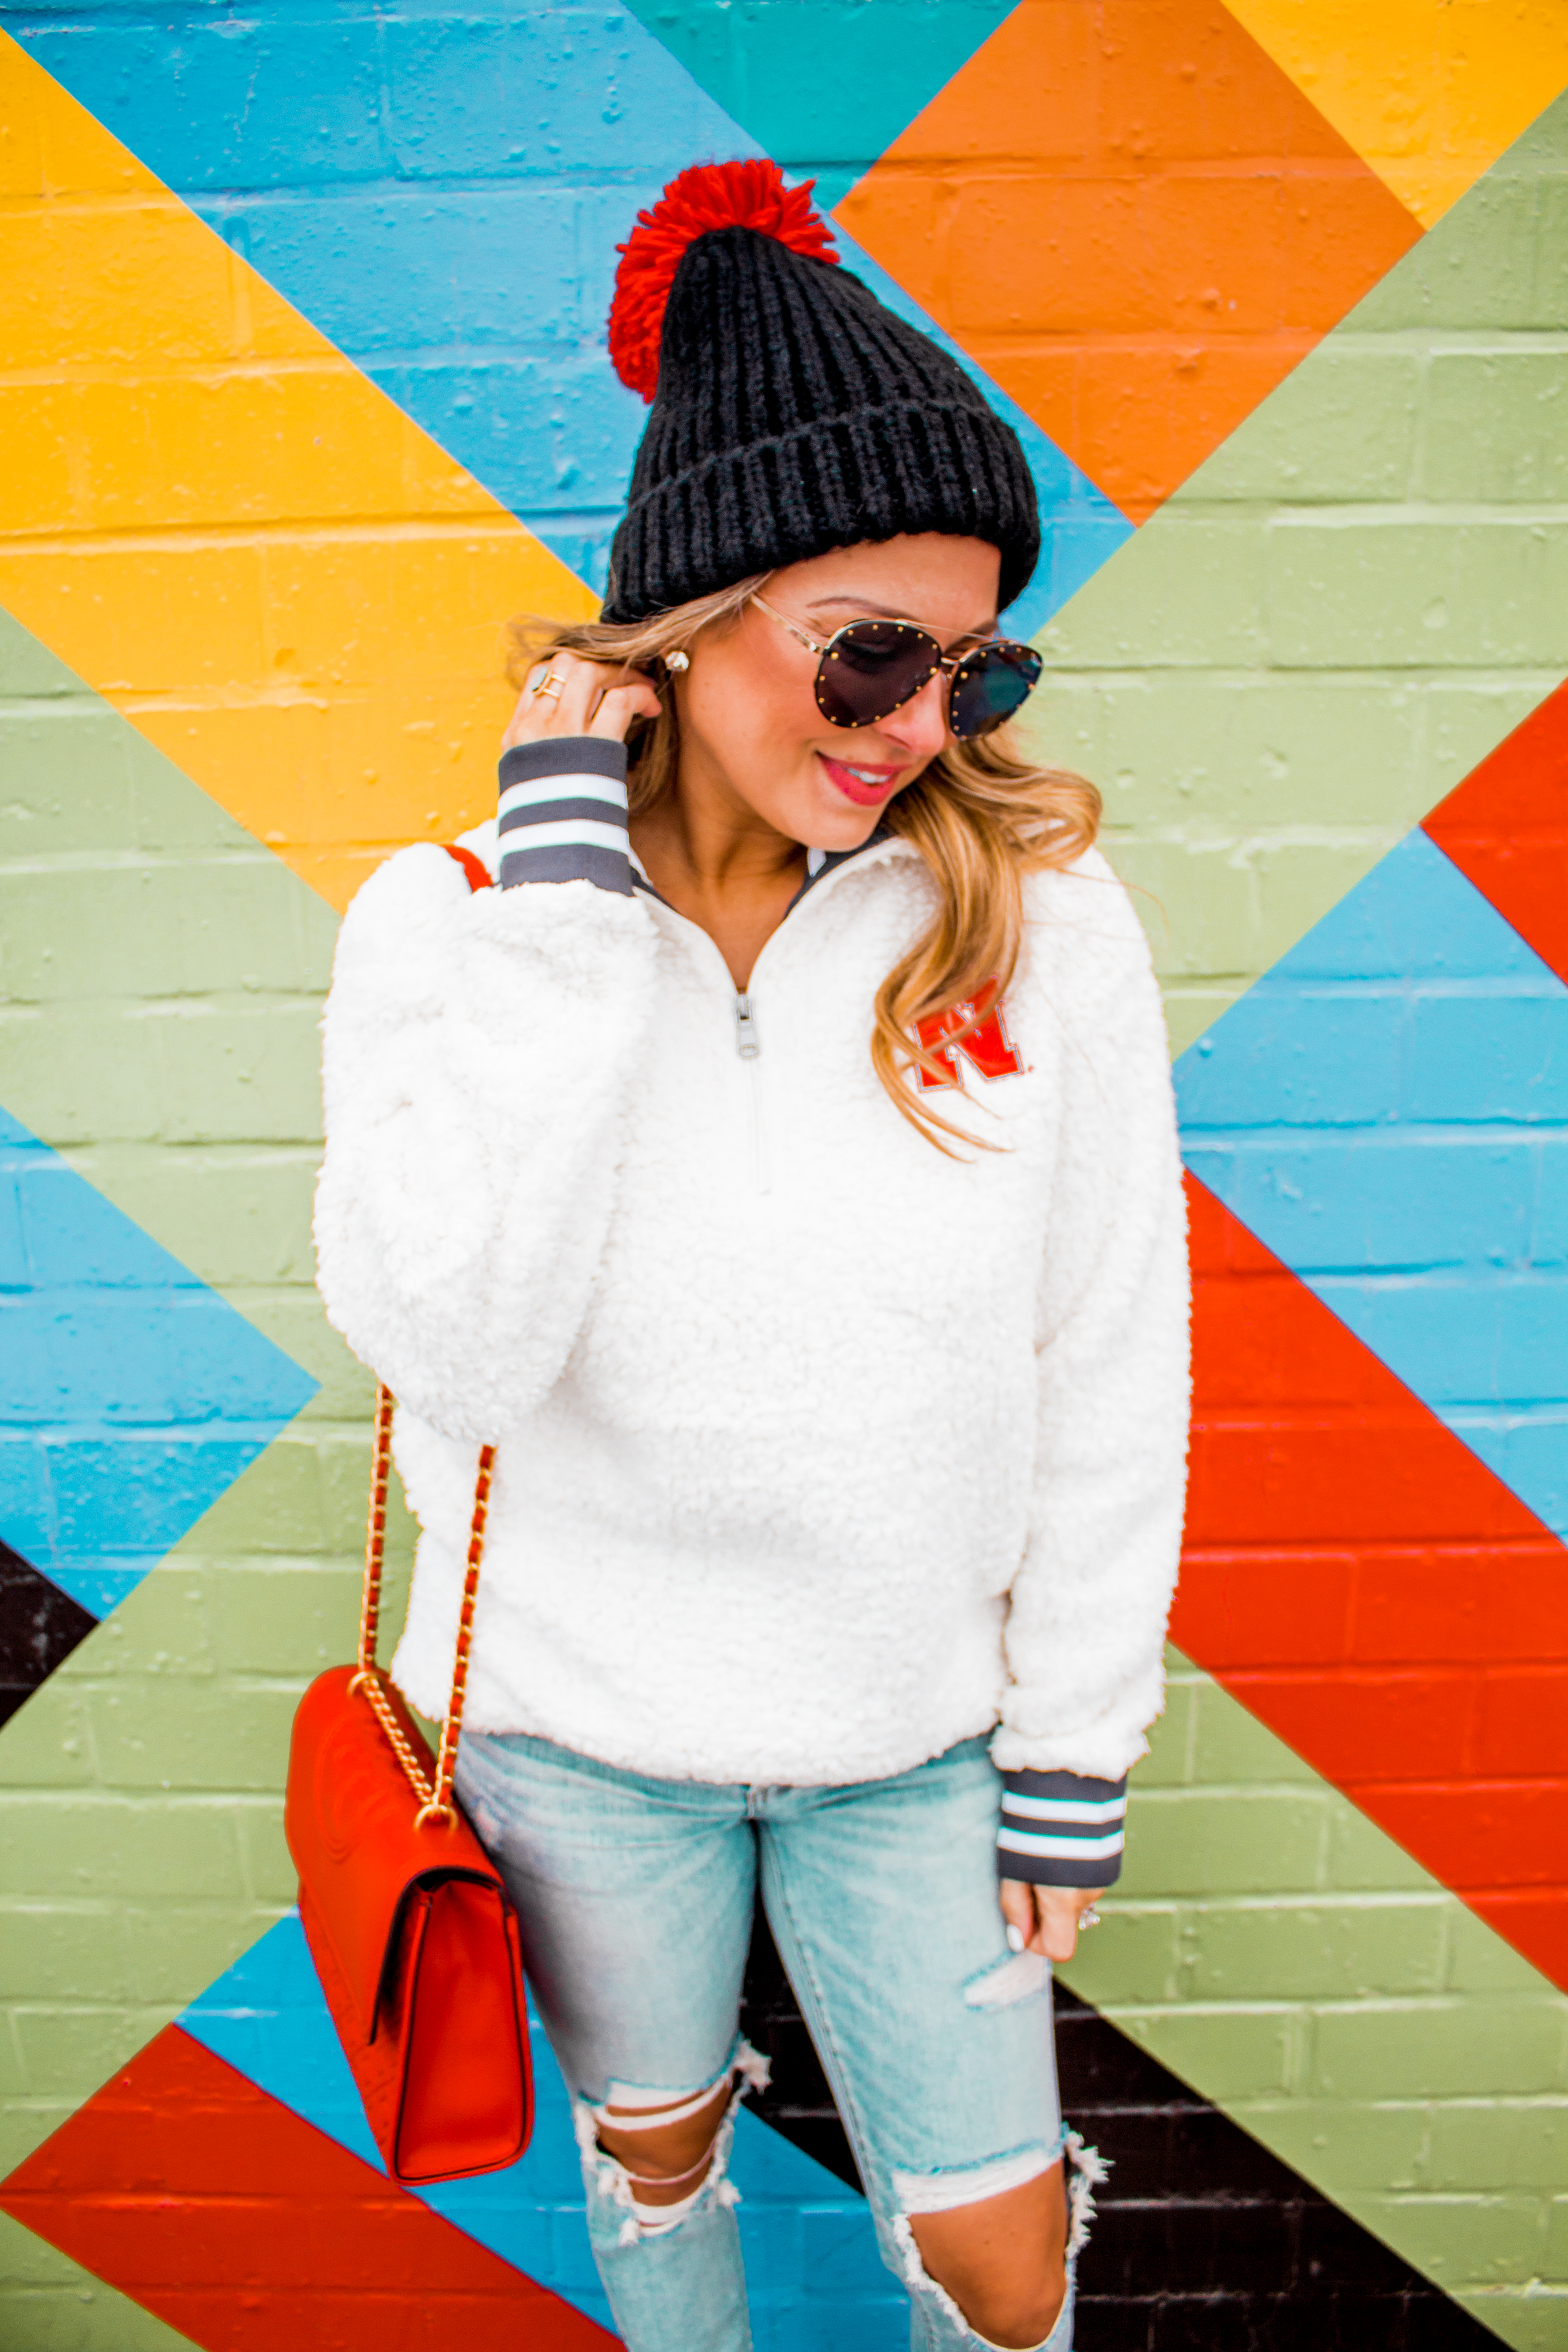 Nebraska - Women's Fashion - Sherpa - Husker - Pullover - Husker Gear - Omaha Blogger - Sabby Style - Casual Outfit - 2